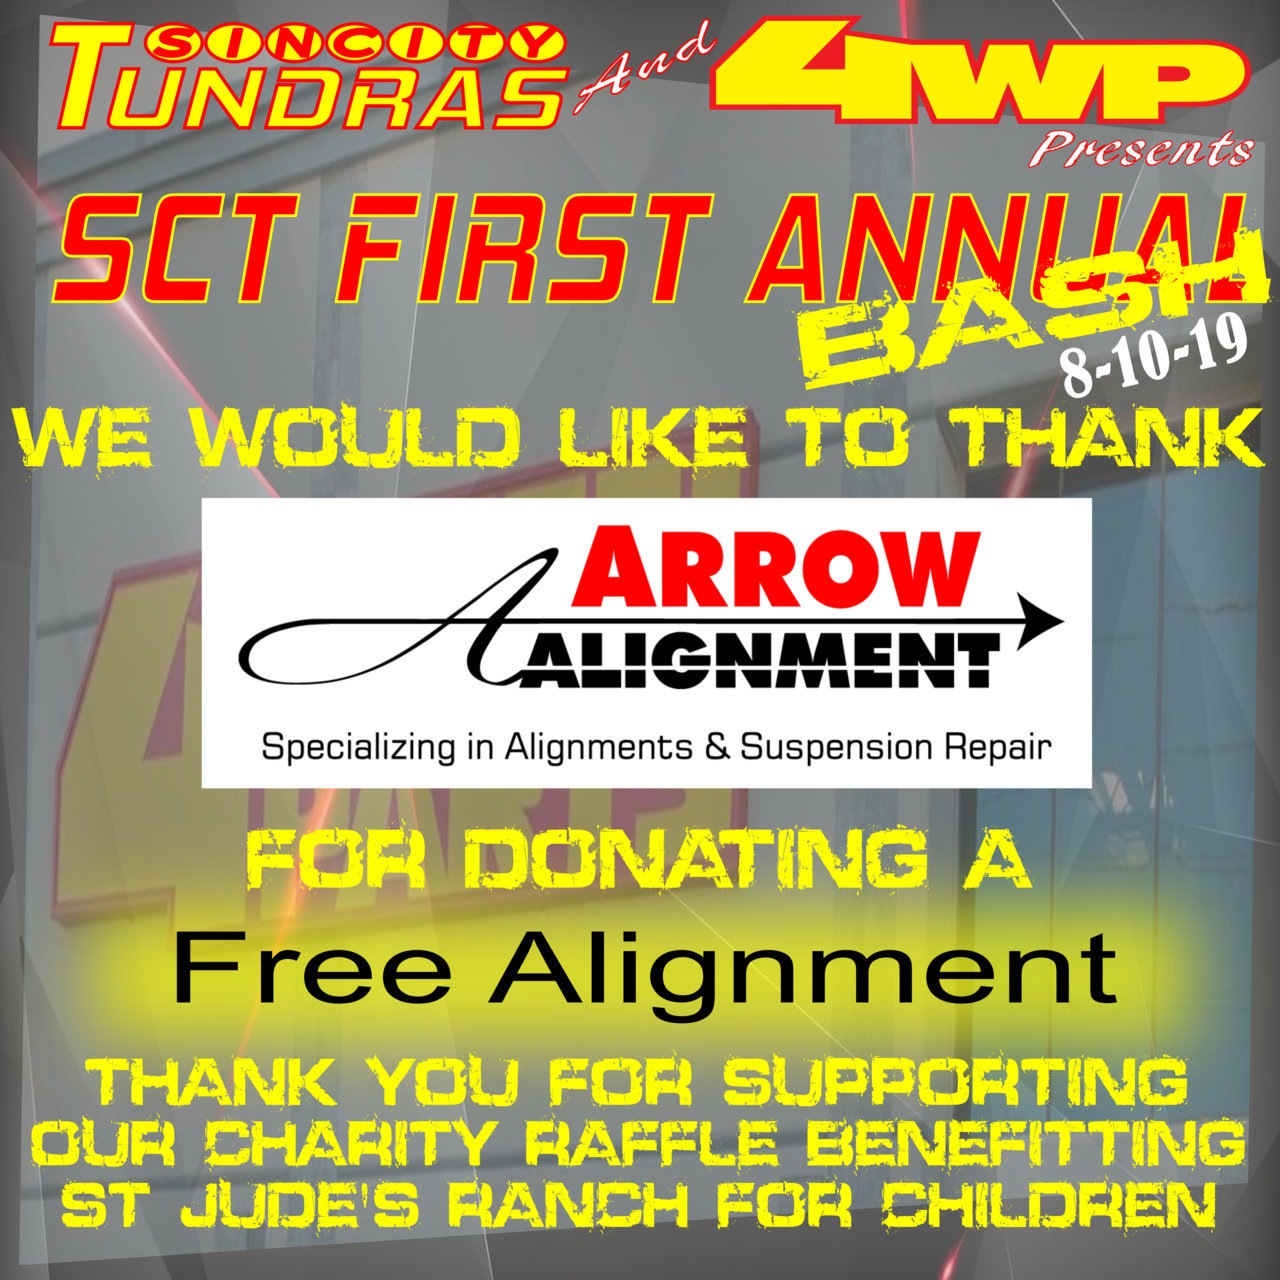 Arrow Alignment Sponsor flyer.jpg